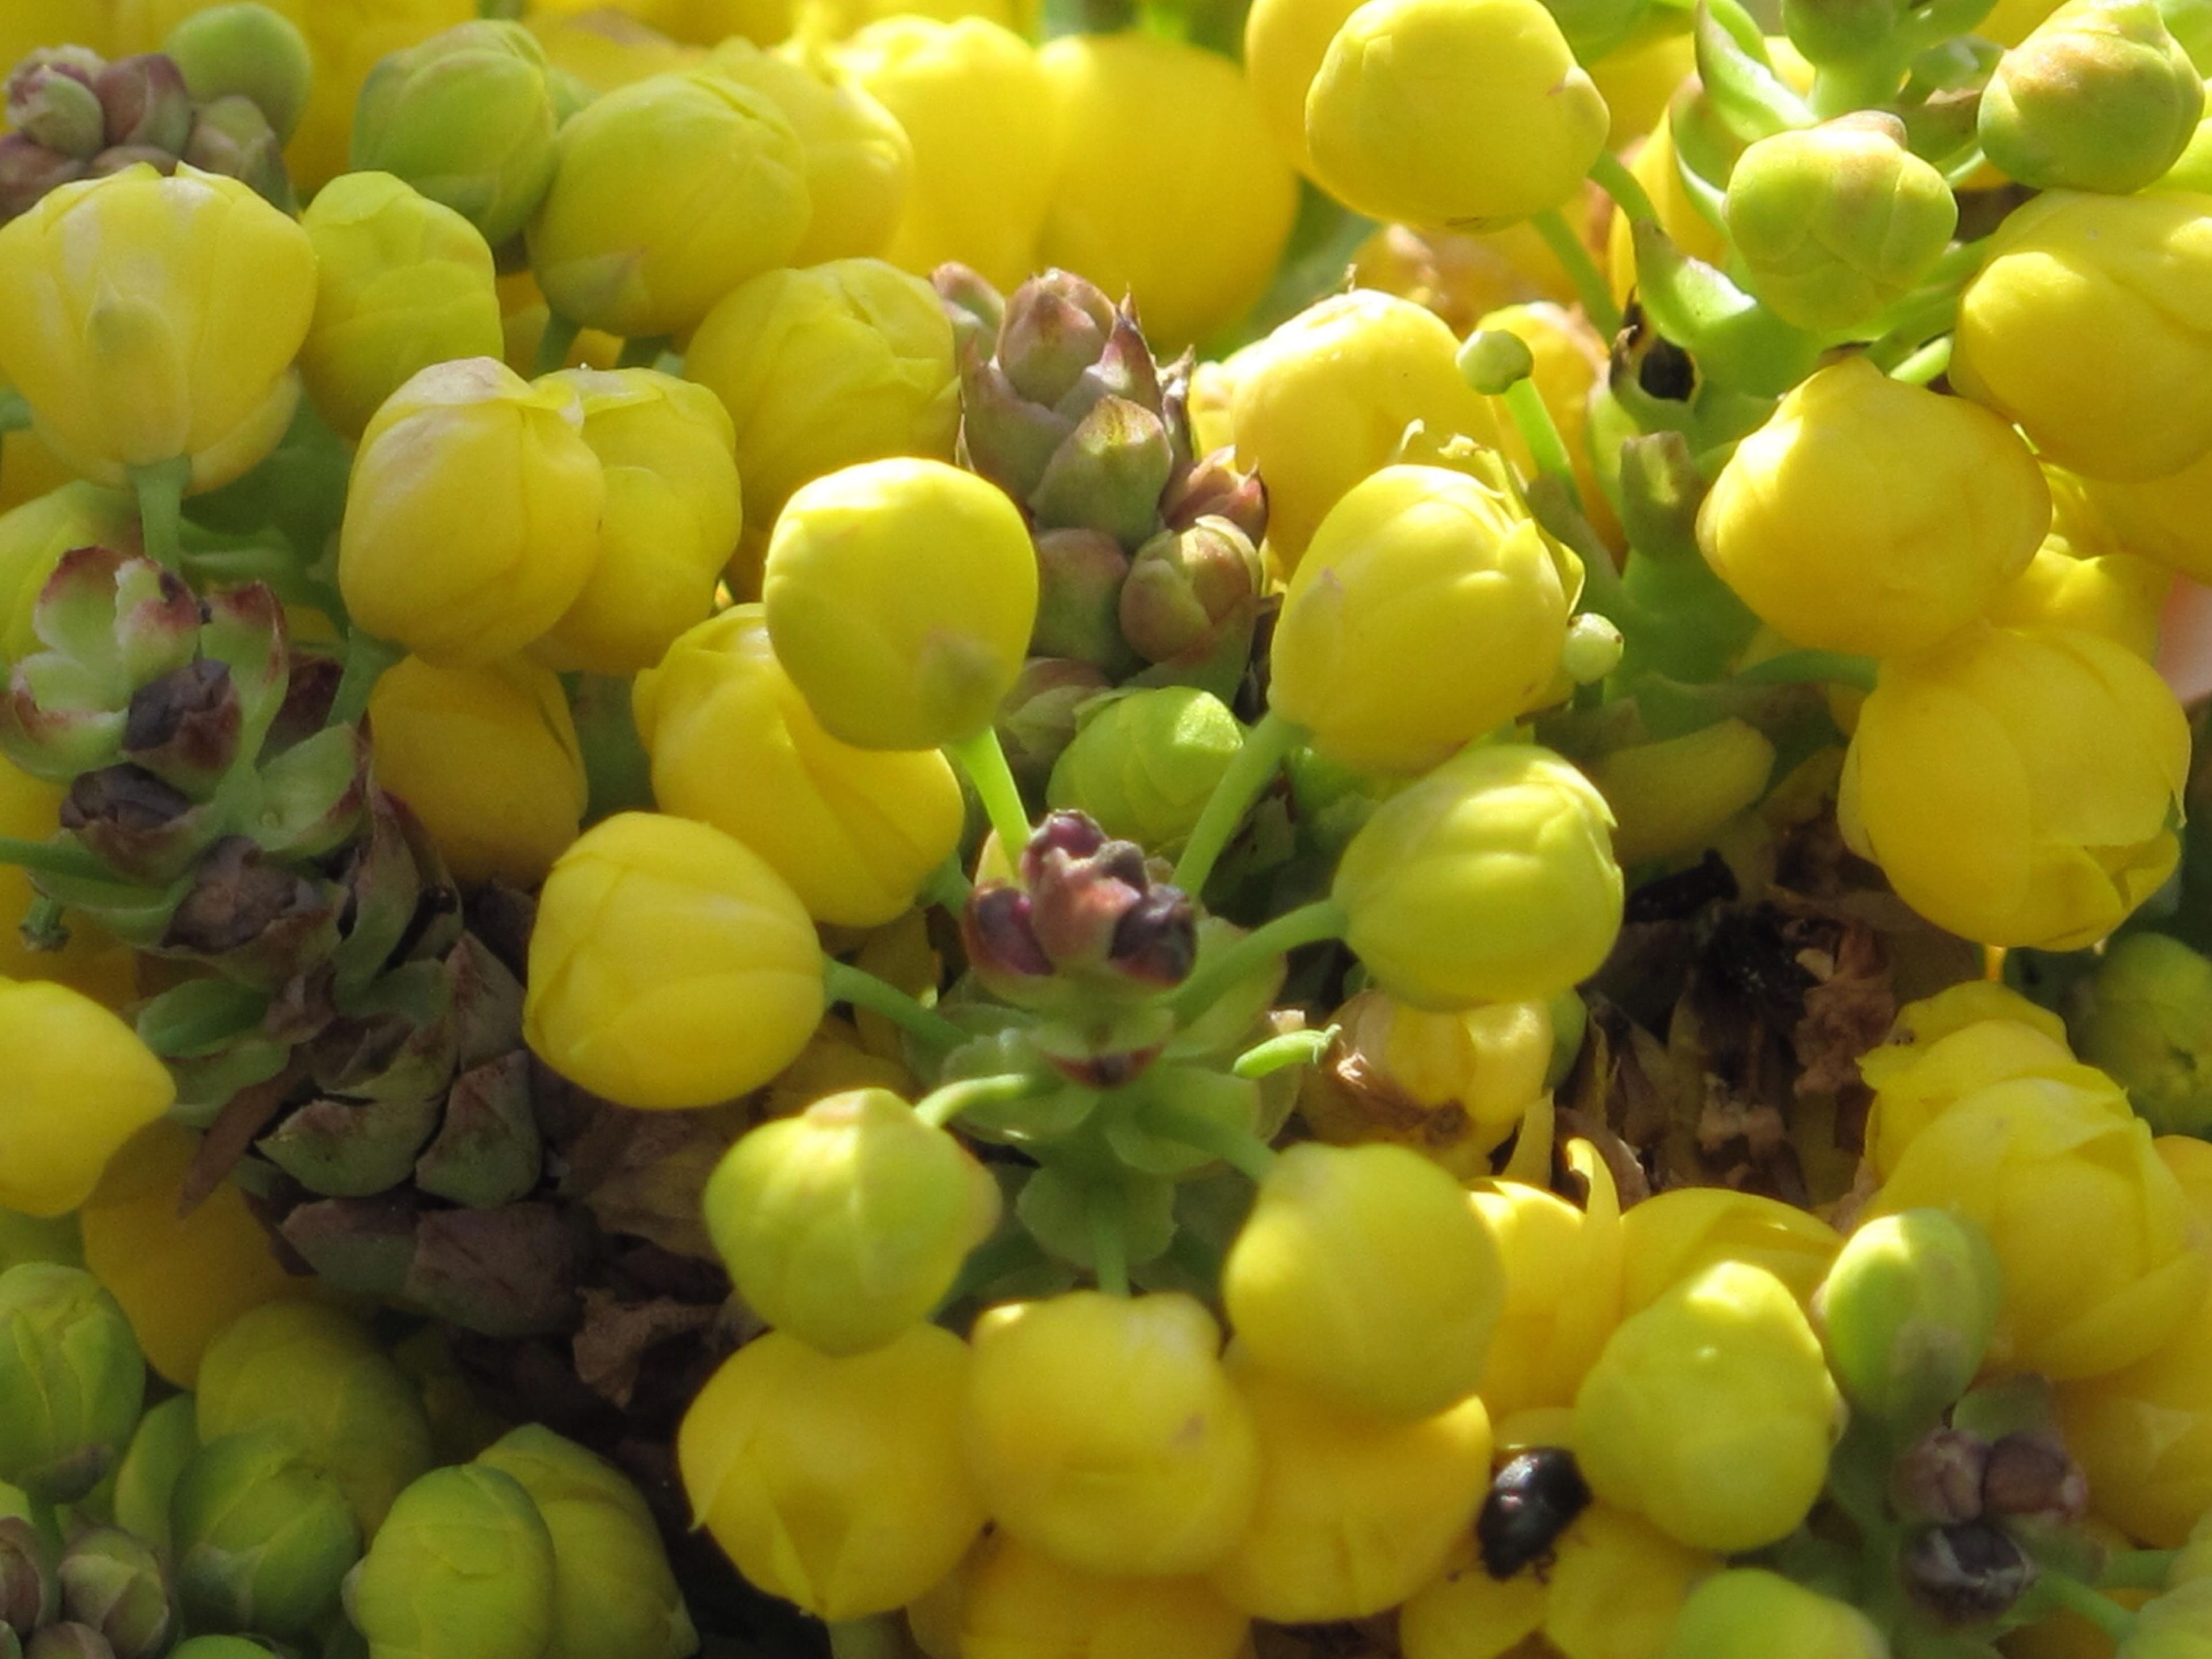 fruit, food and drink, freshness, healthy eating, food, yellow, abundance, grape, large group of objects, bunch, close-up, full frame, growth, ripe, green color, organic, backgrounds, variation, no people, day